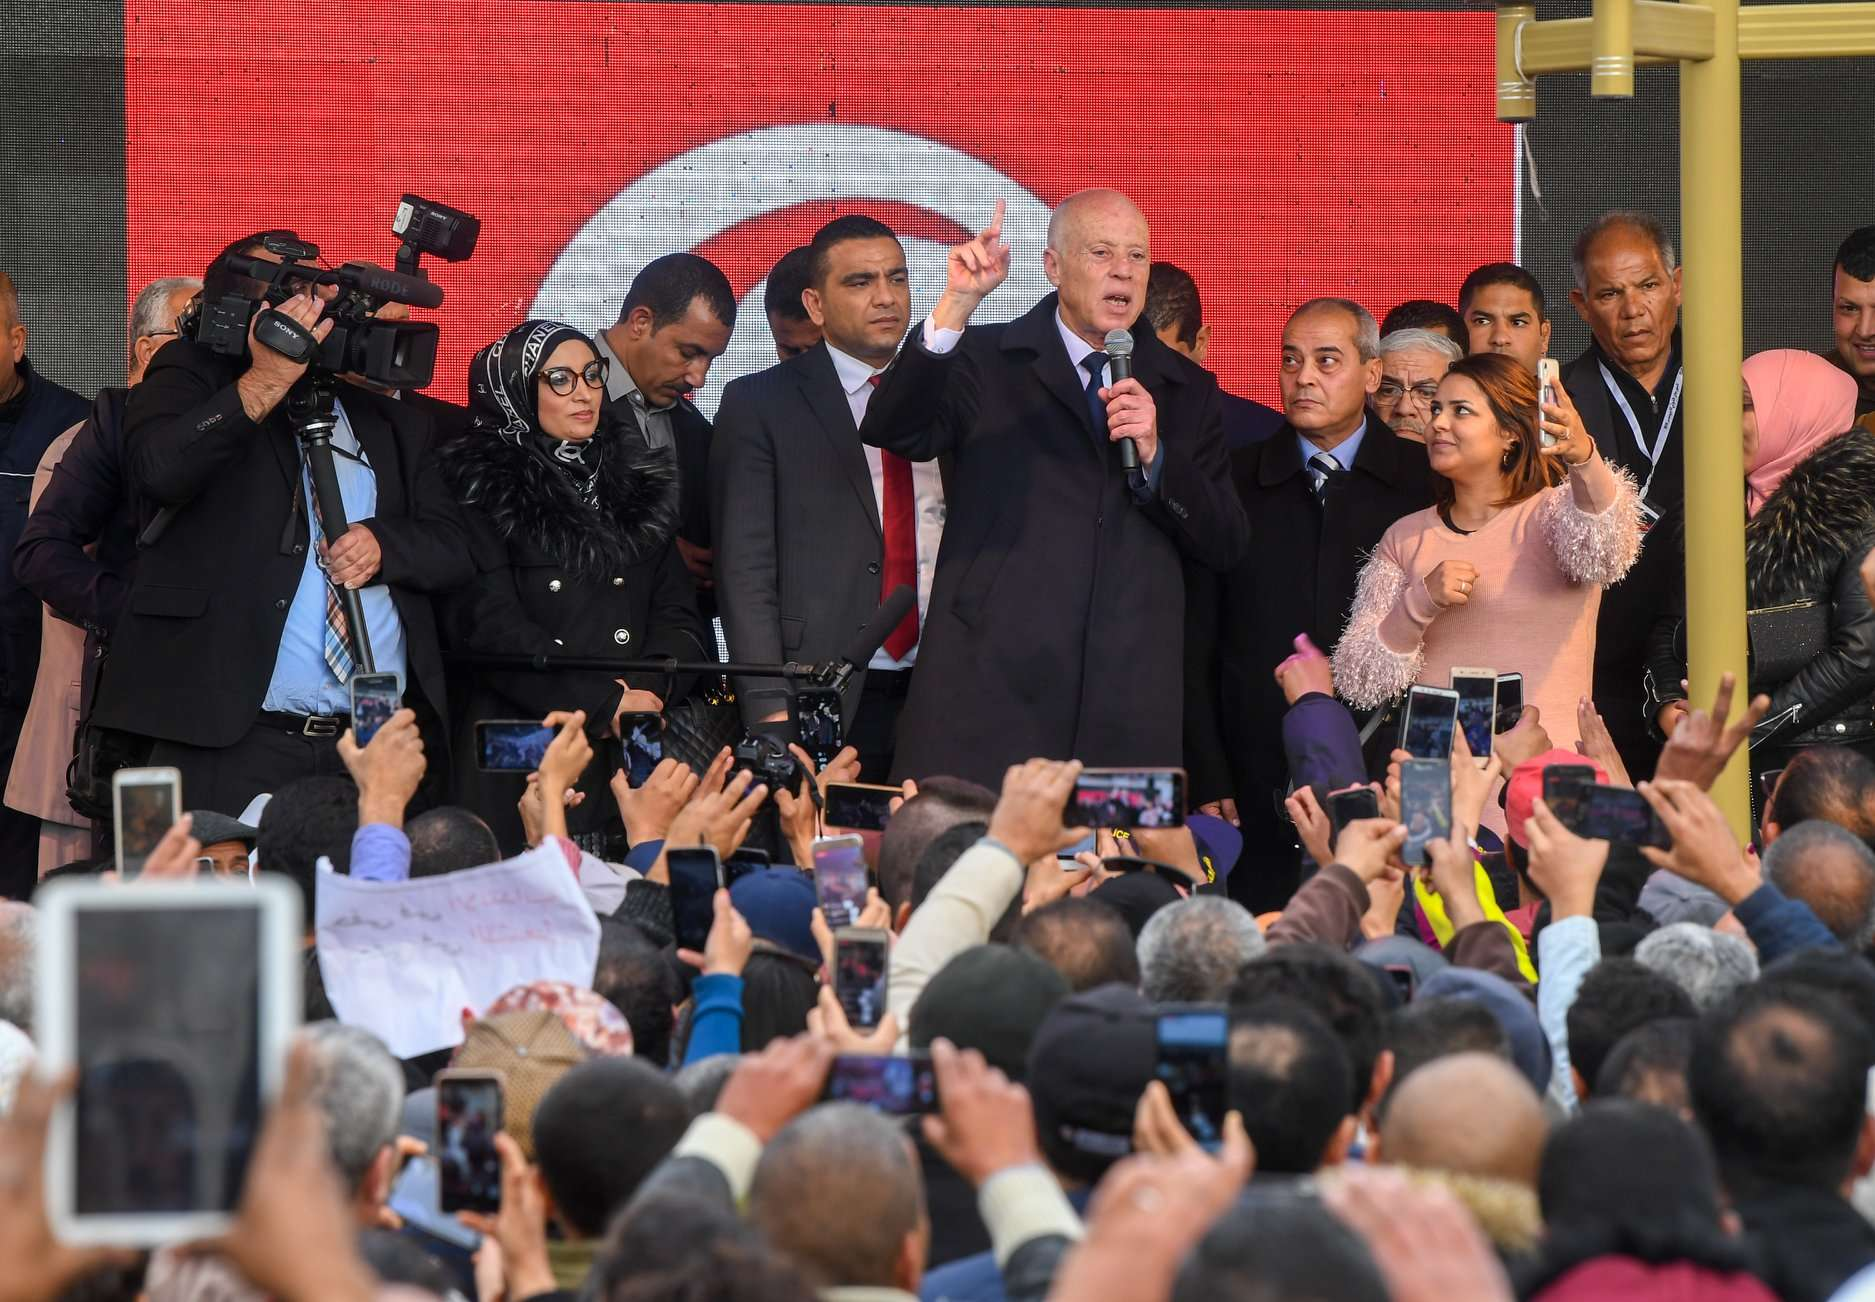 A handout picture provided by the Tunisian Presidency Press Service on December 17, 2019 shows President Kais Saied speaking to a crowd of people in the central Tunisian town of Sidi Bouzid. (AFP)